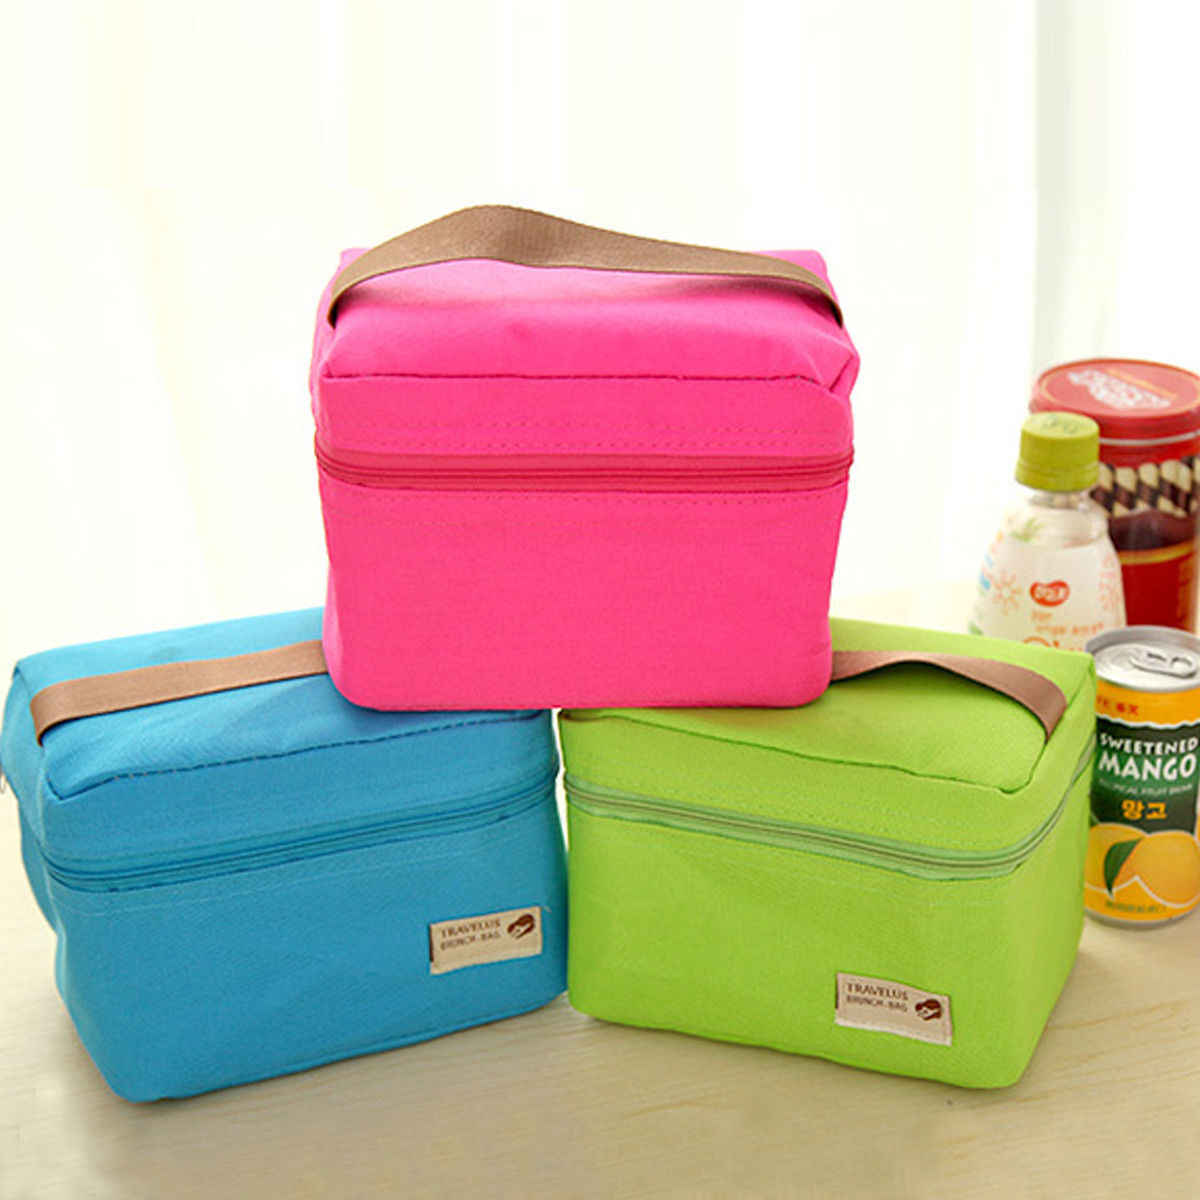 Portable Thermal Travel Picnic Lunch Box Storage Bag Waterproof Picnic Carry Tote Lunchbags Green Blue Gray Rose Red